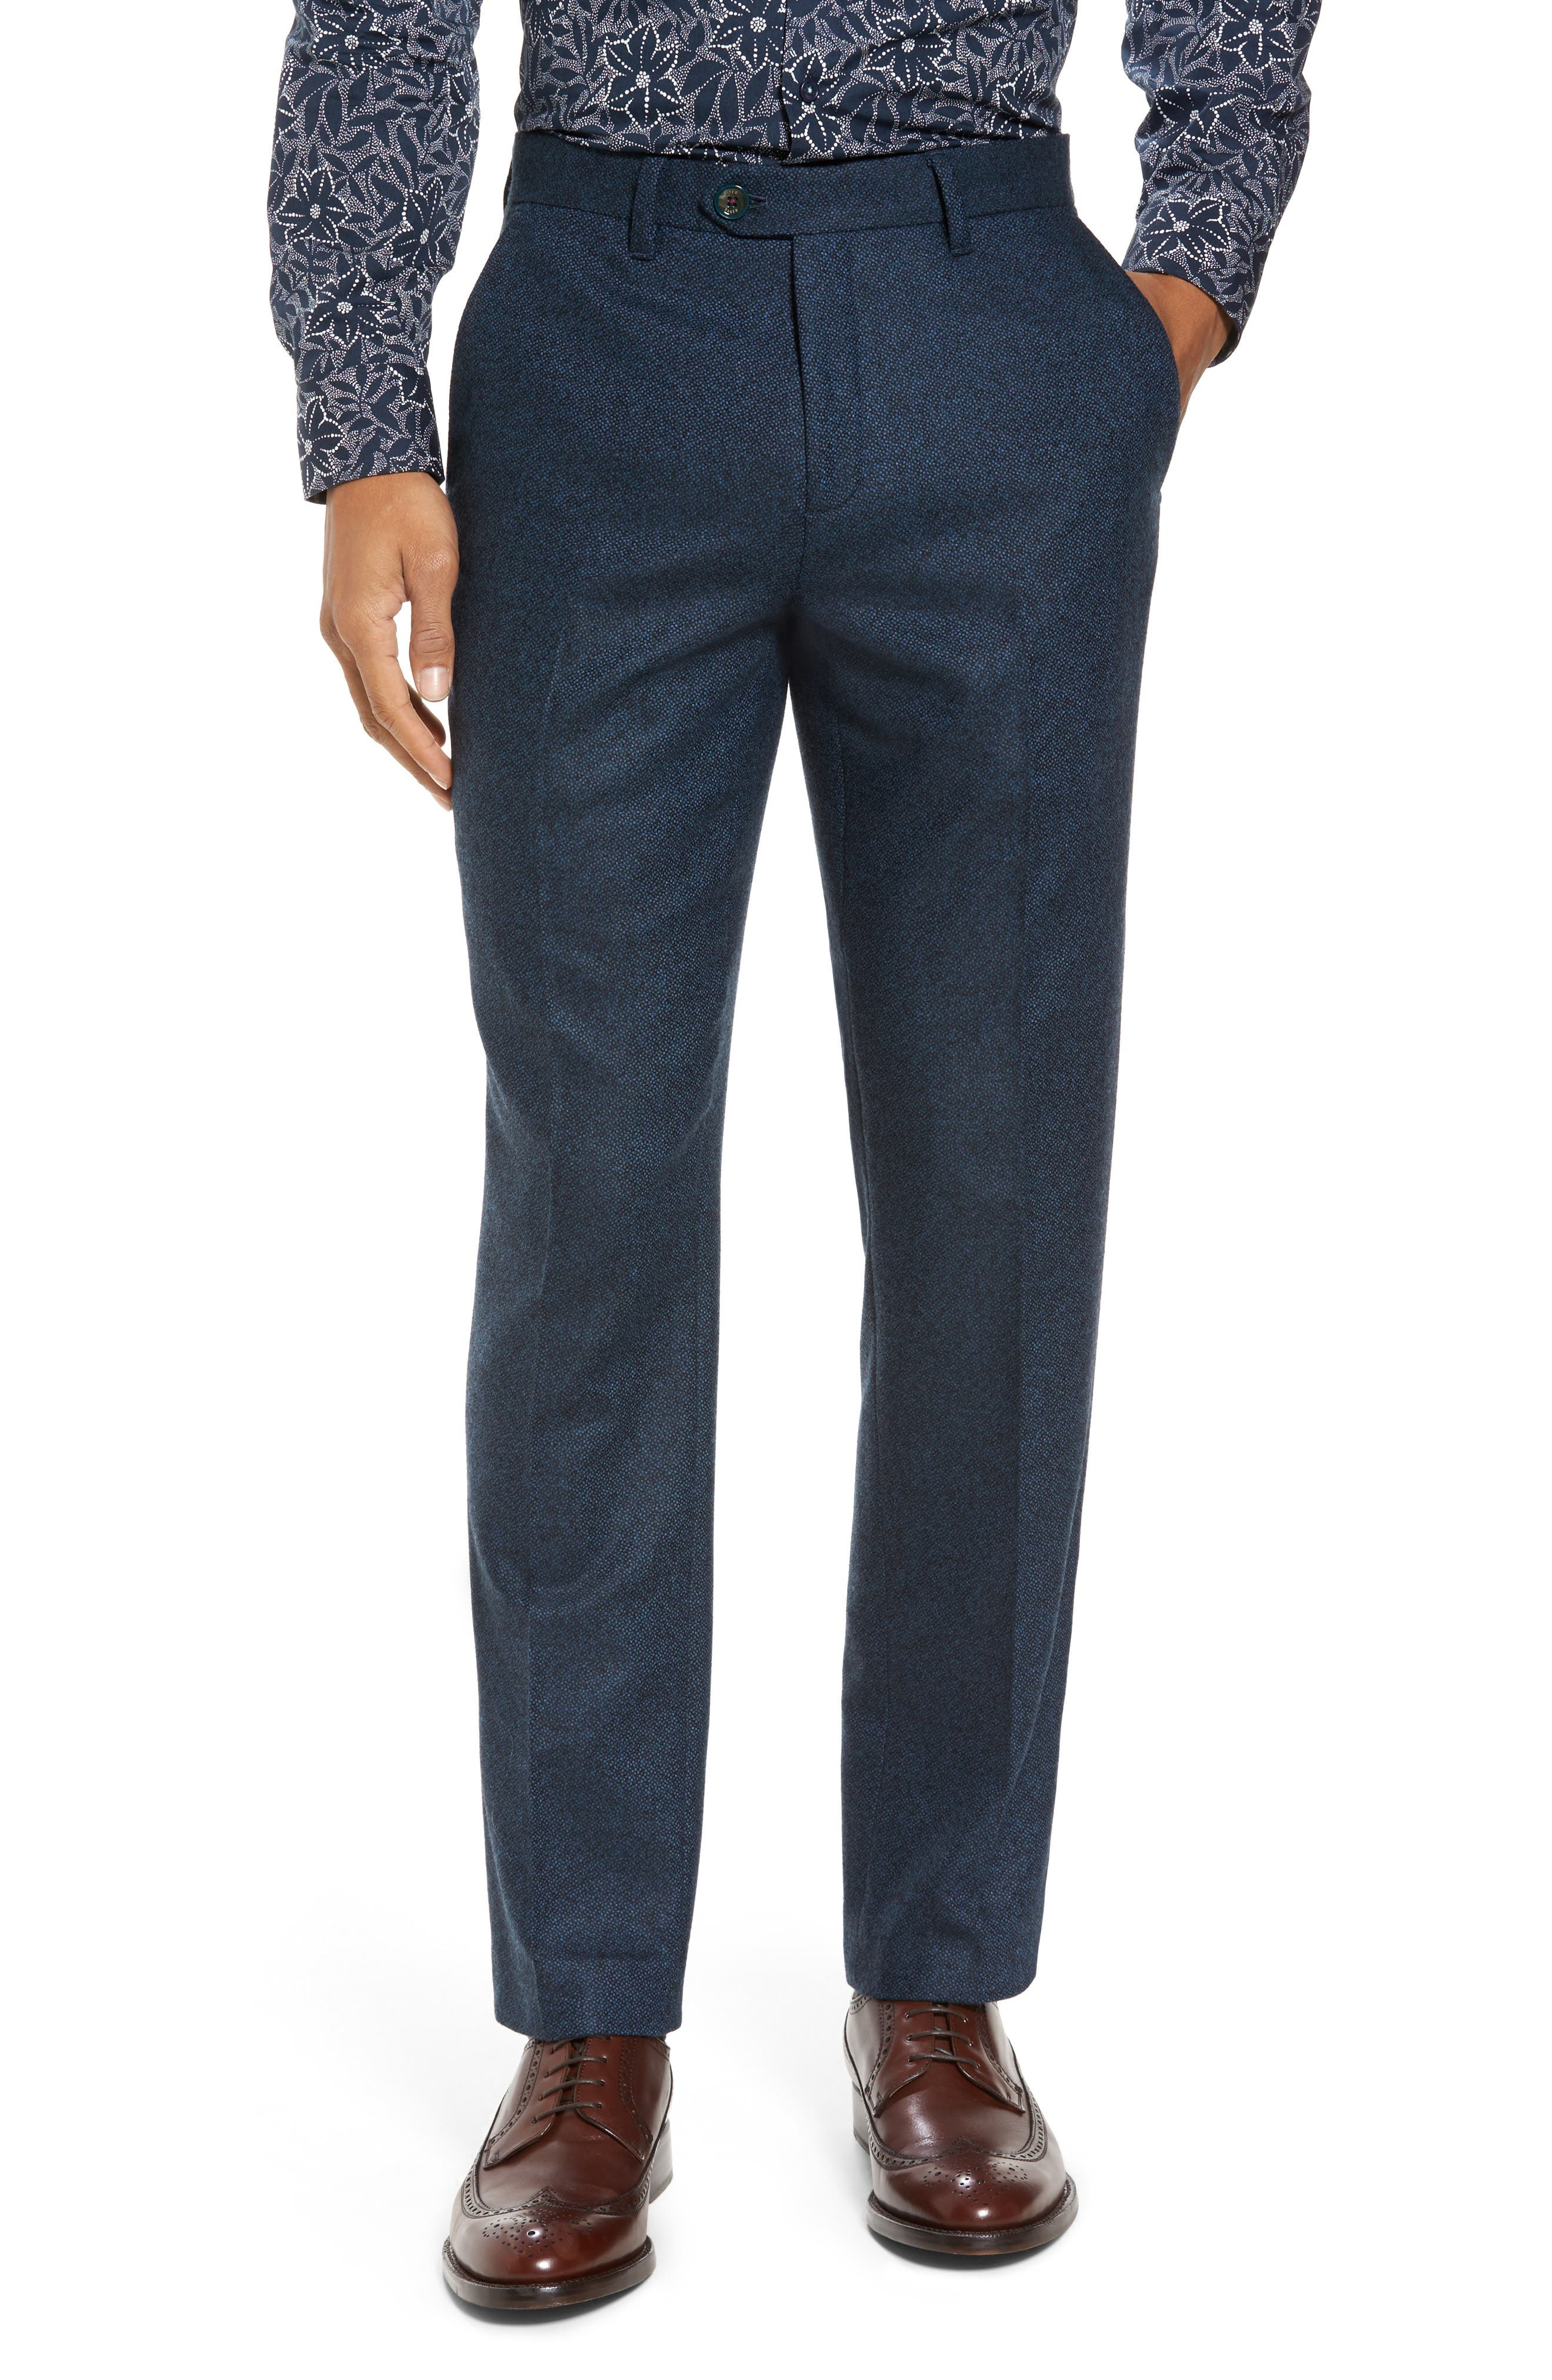 Modern Slim Fit Trousers,                         Main,                         color, Teal Blue